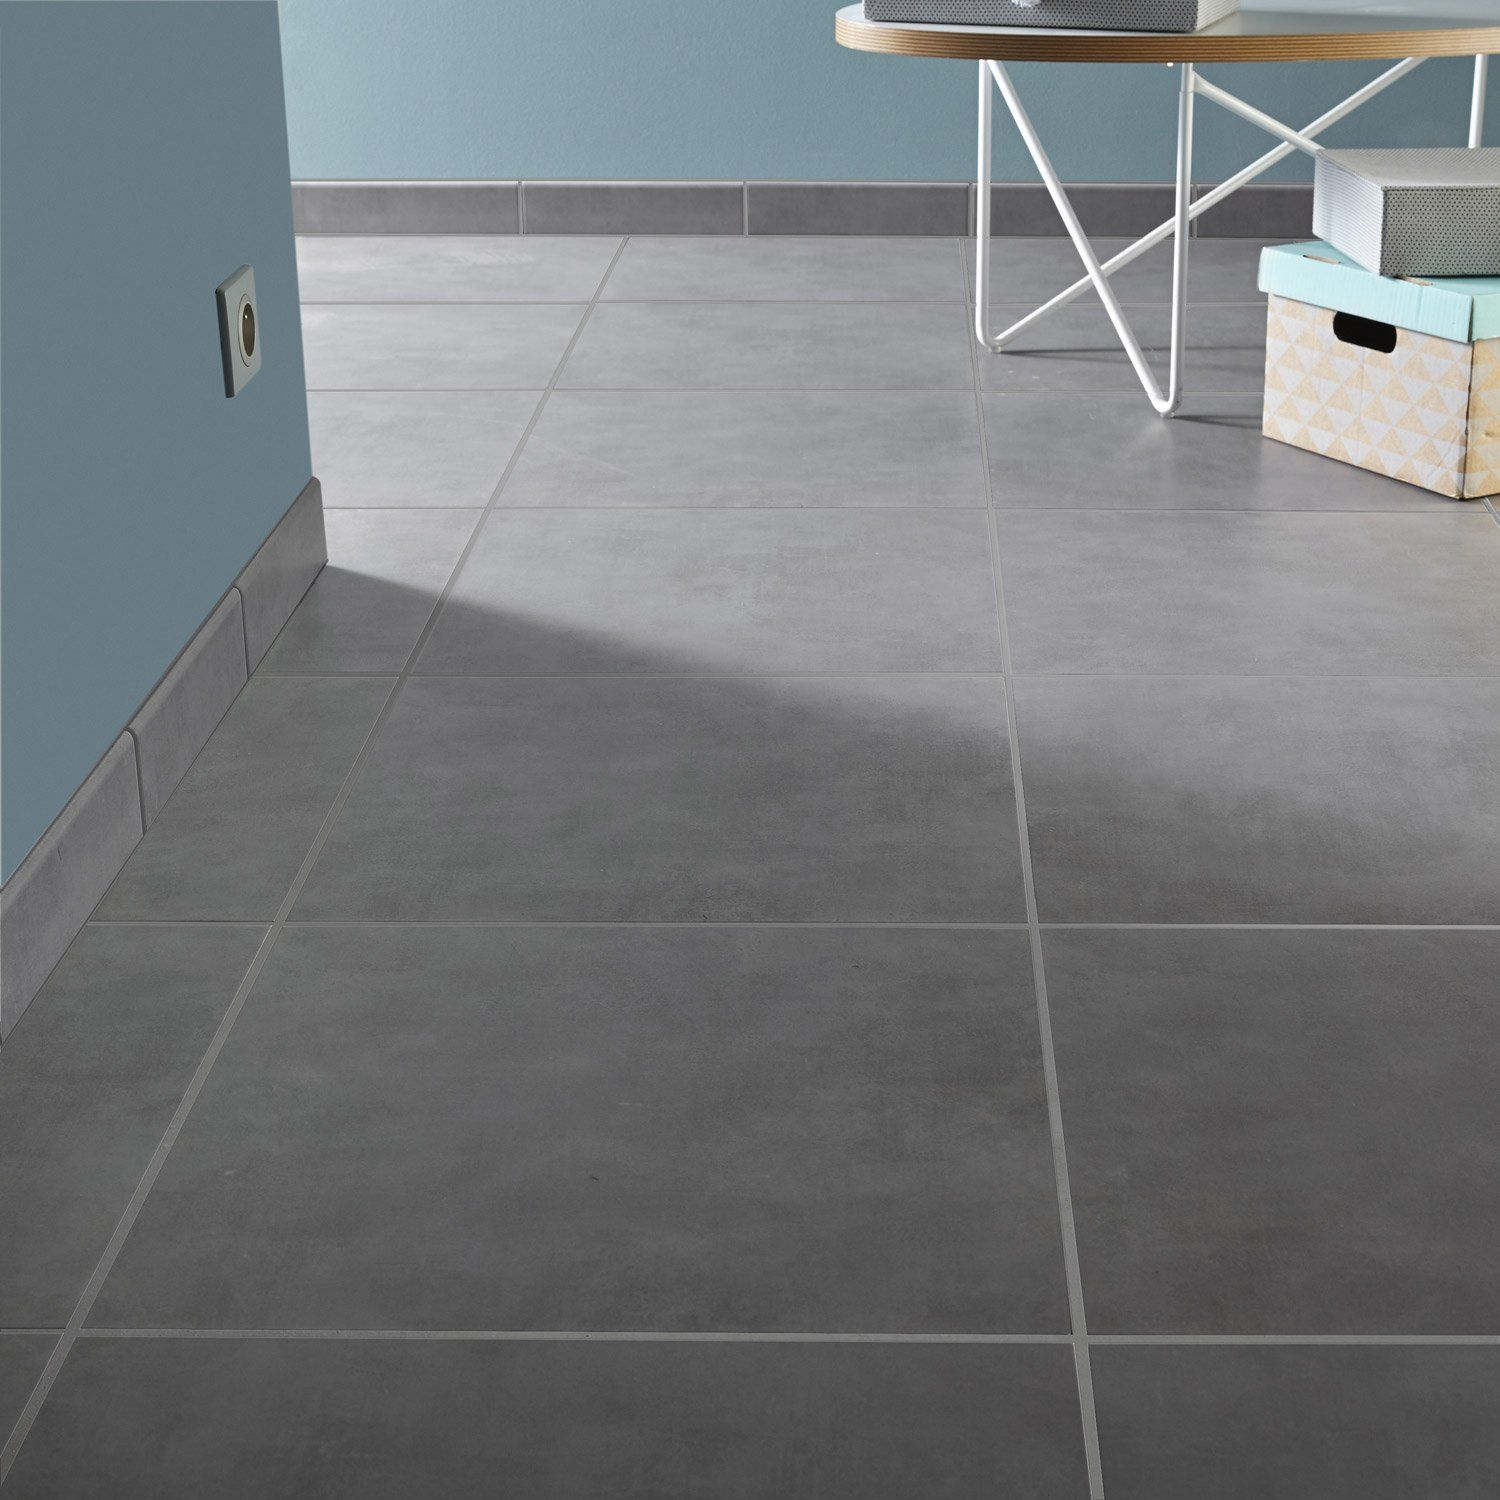 Carrelage int rieur kiosque aero en gr s gris poivr 45 for Carrelage 45x45 gris anthracite